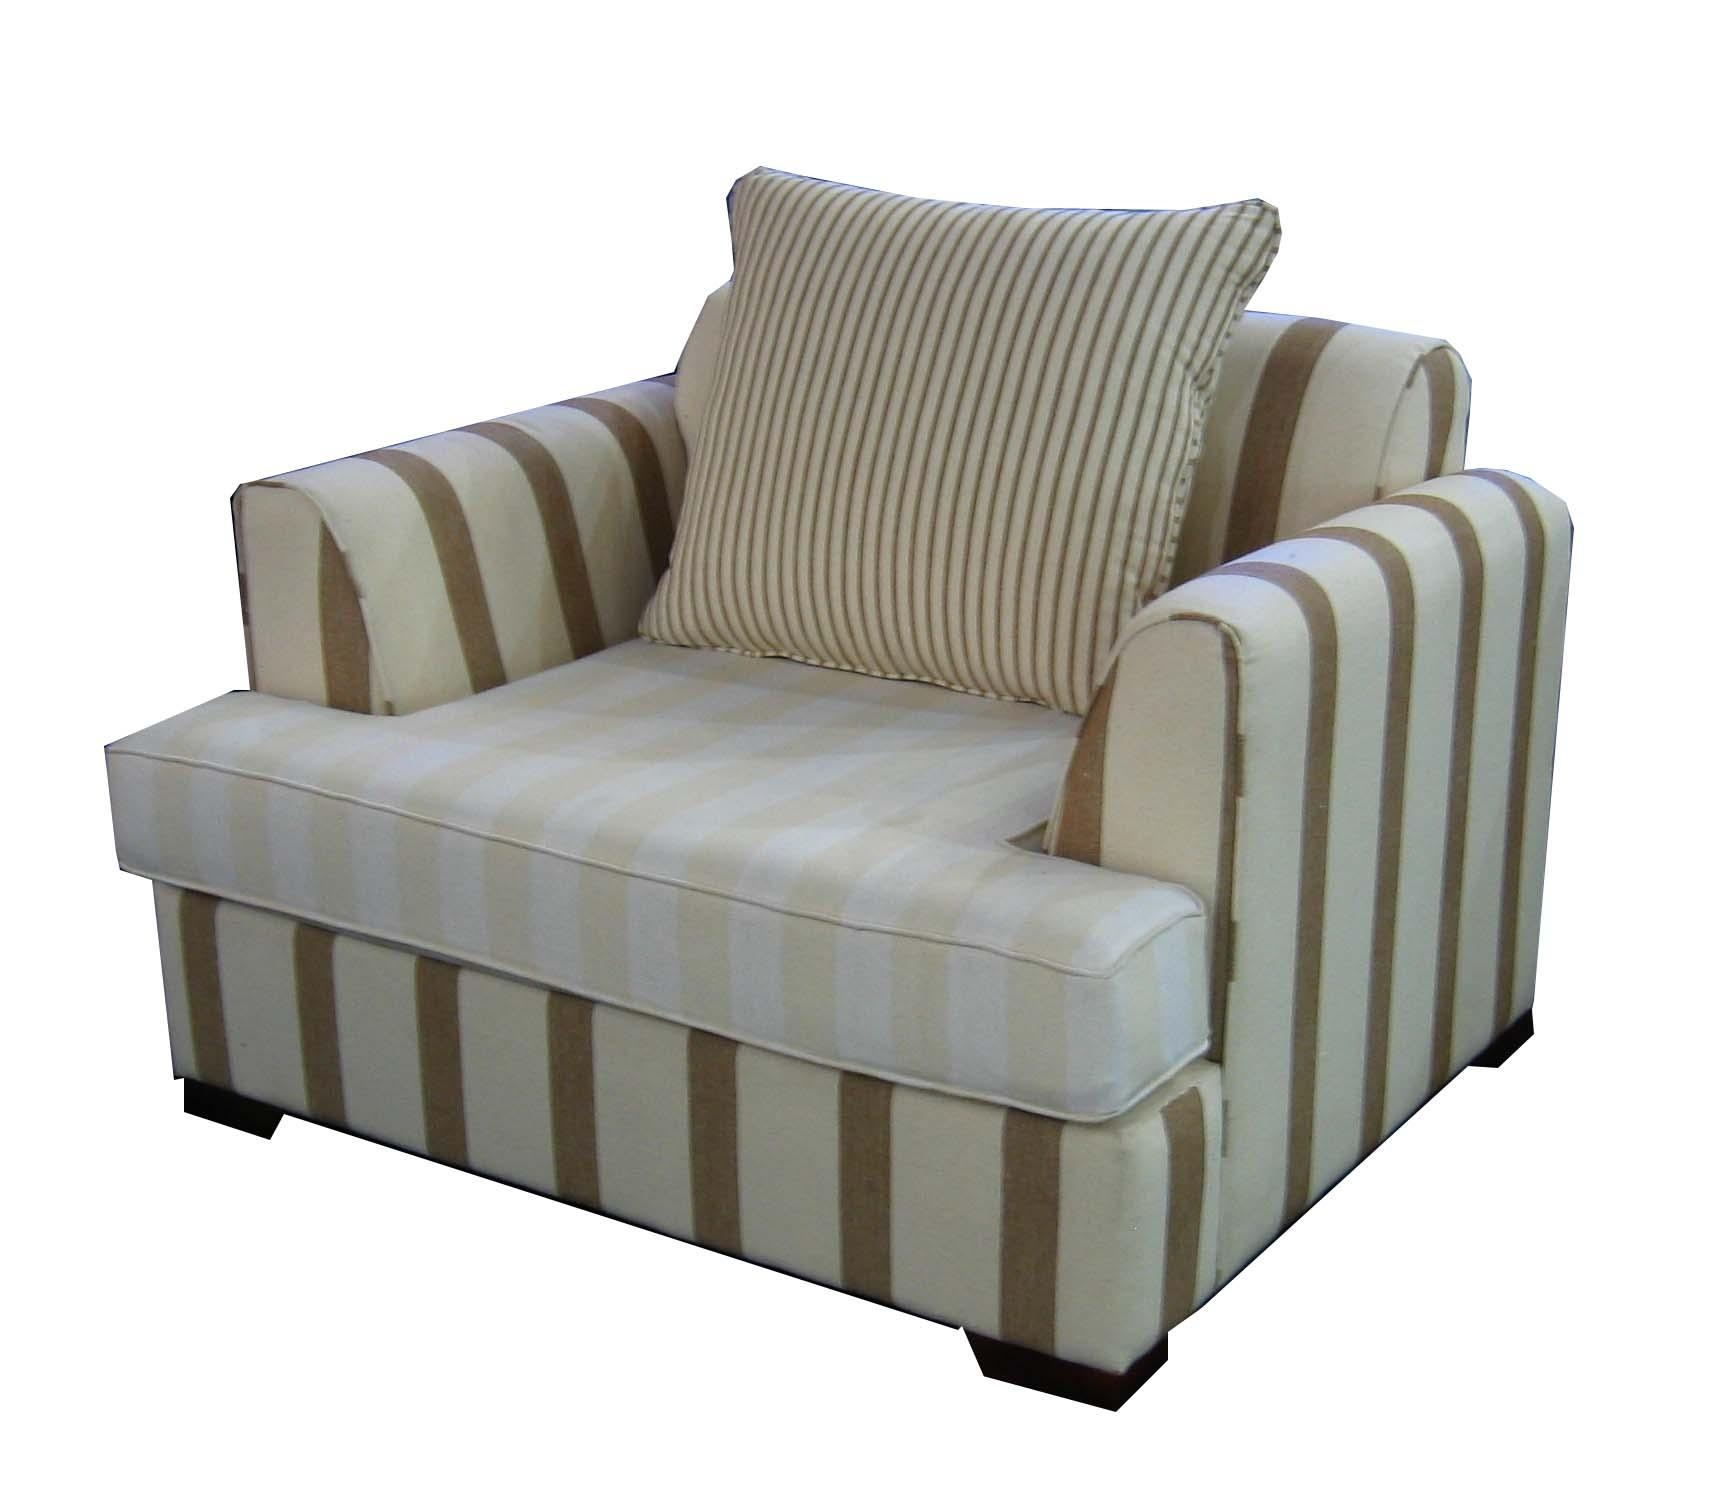 Decorative Single Sofa Chair Sofabed Armless 1 720X540Jpg | Clicpilot Regarding Sofa With Chairs (View 9 of 20)